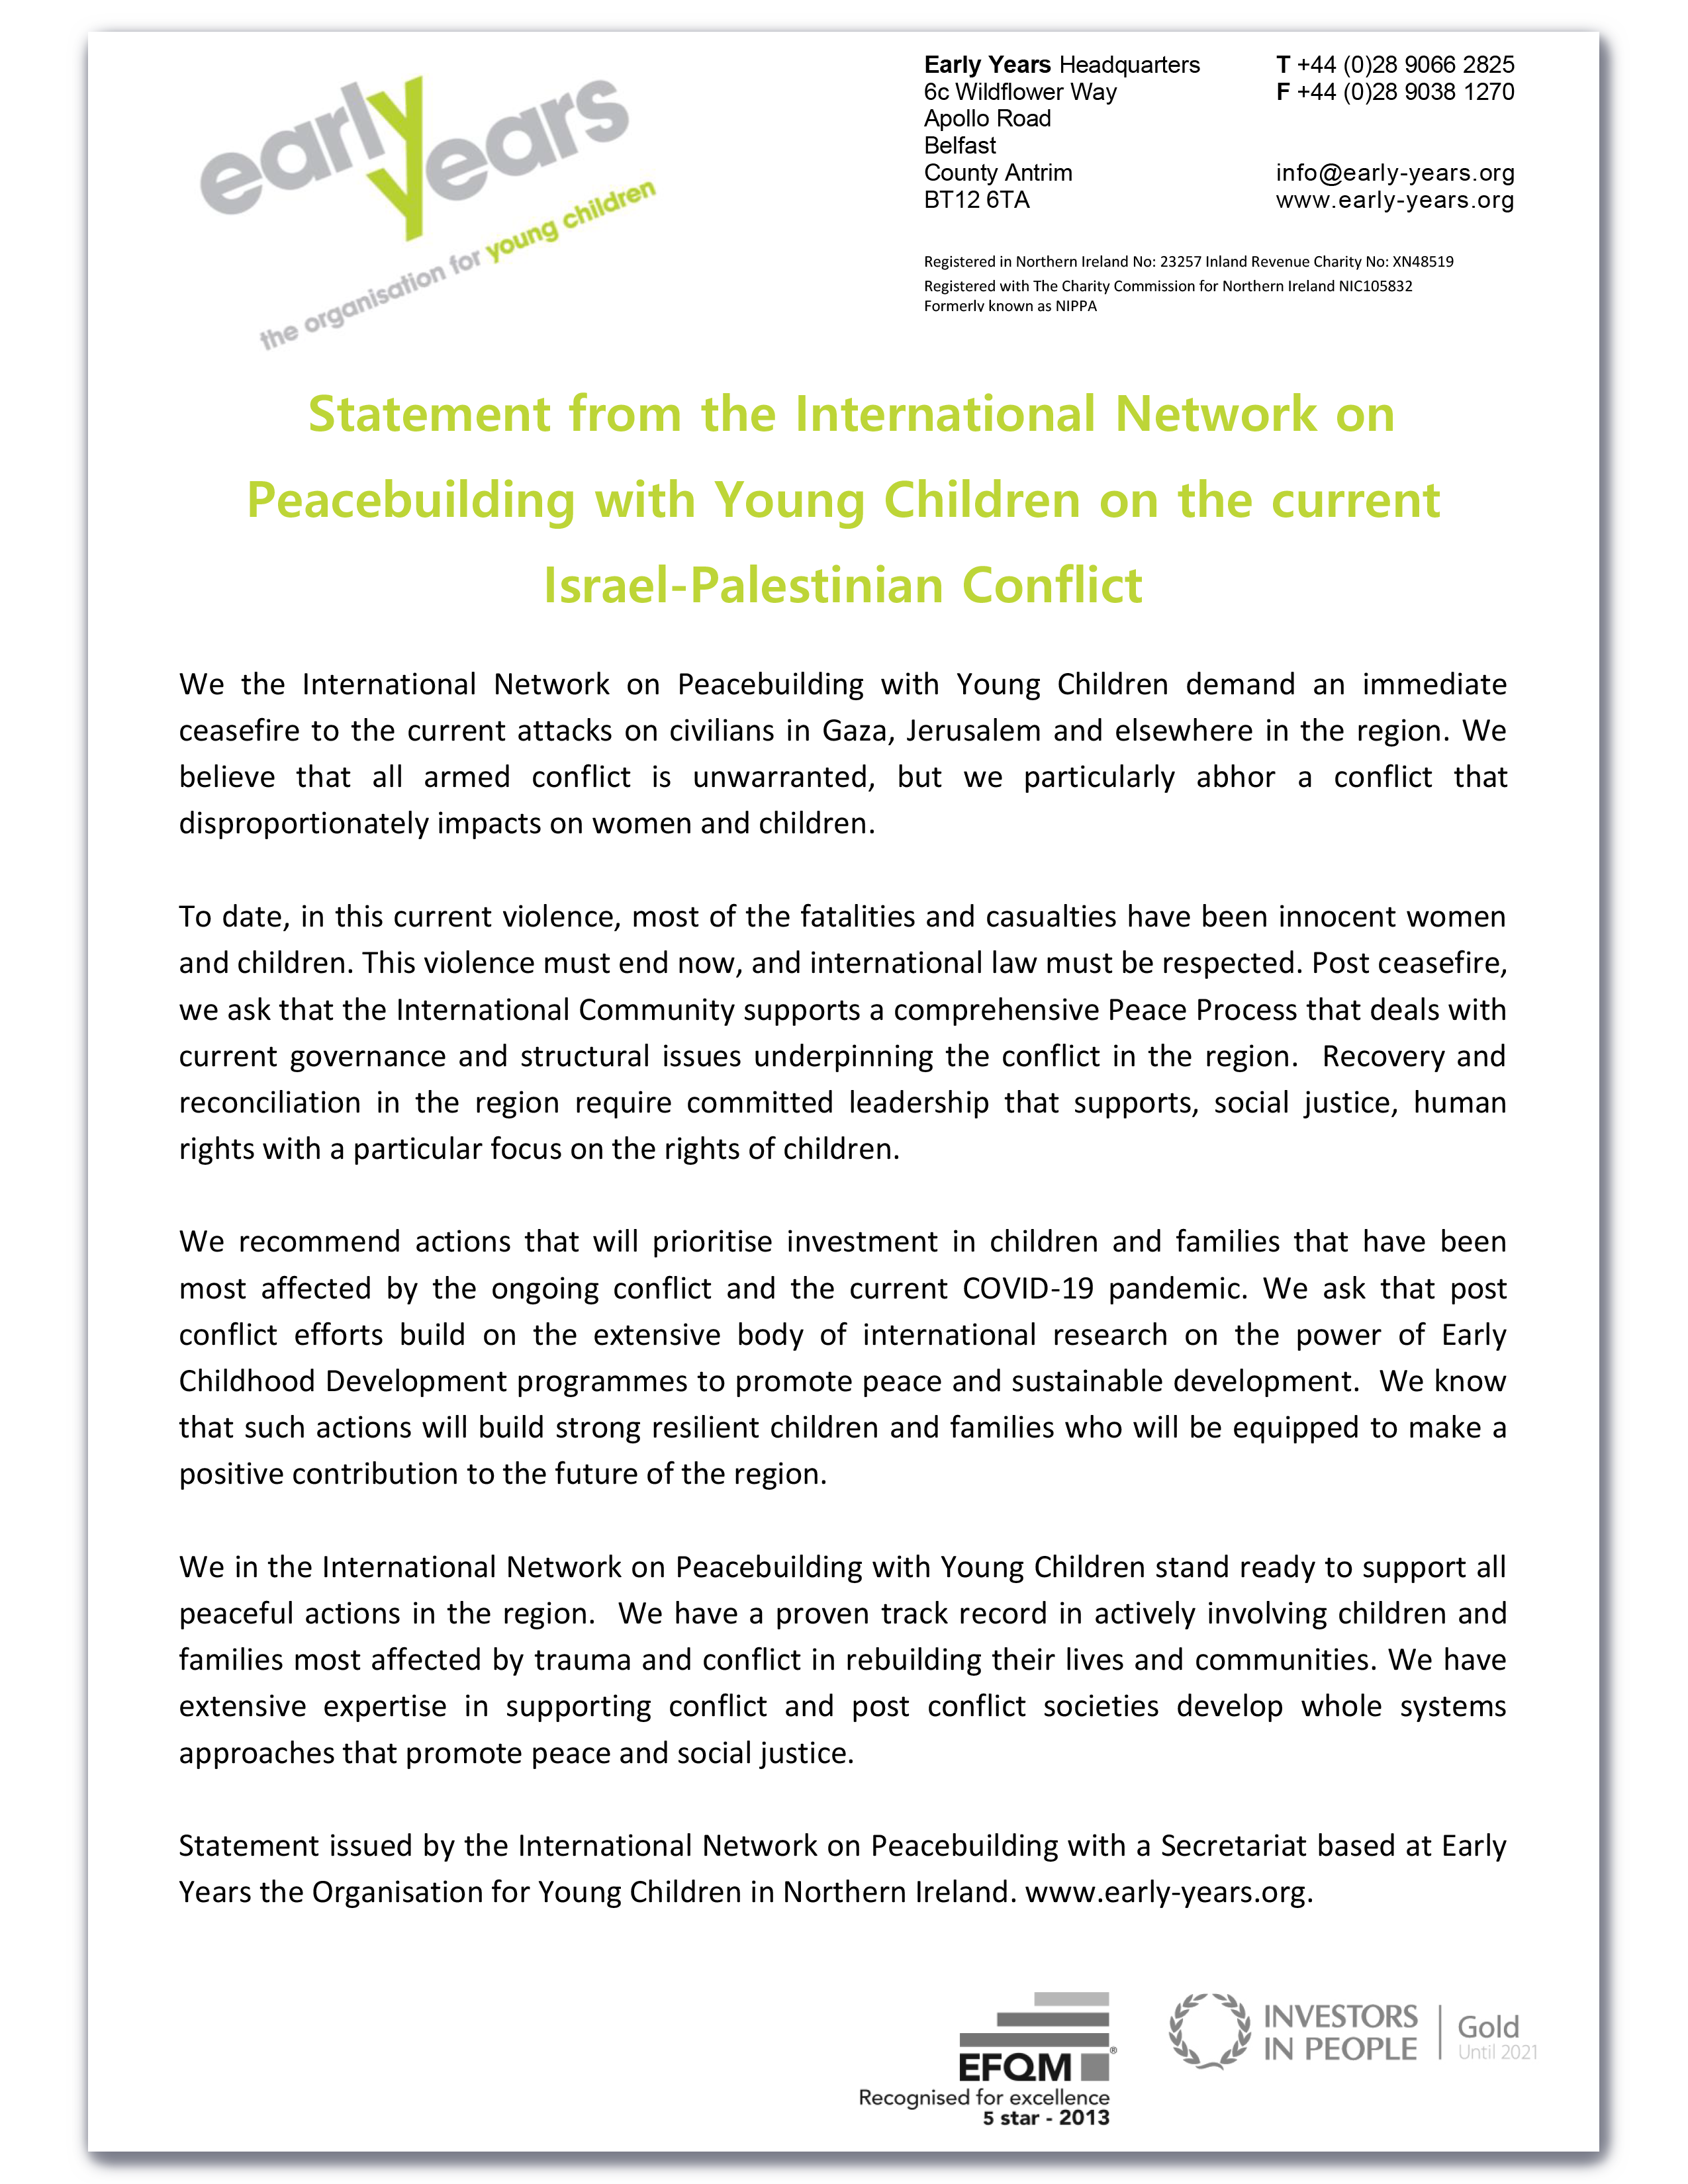 Statement from the International Network on Peacebuilding with Young Children on the current Israel-Palestine Conflict